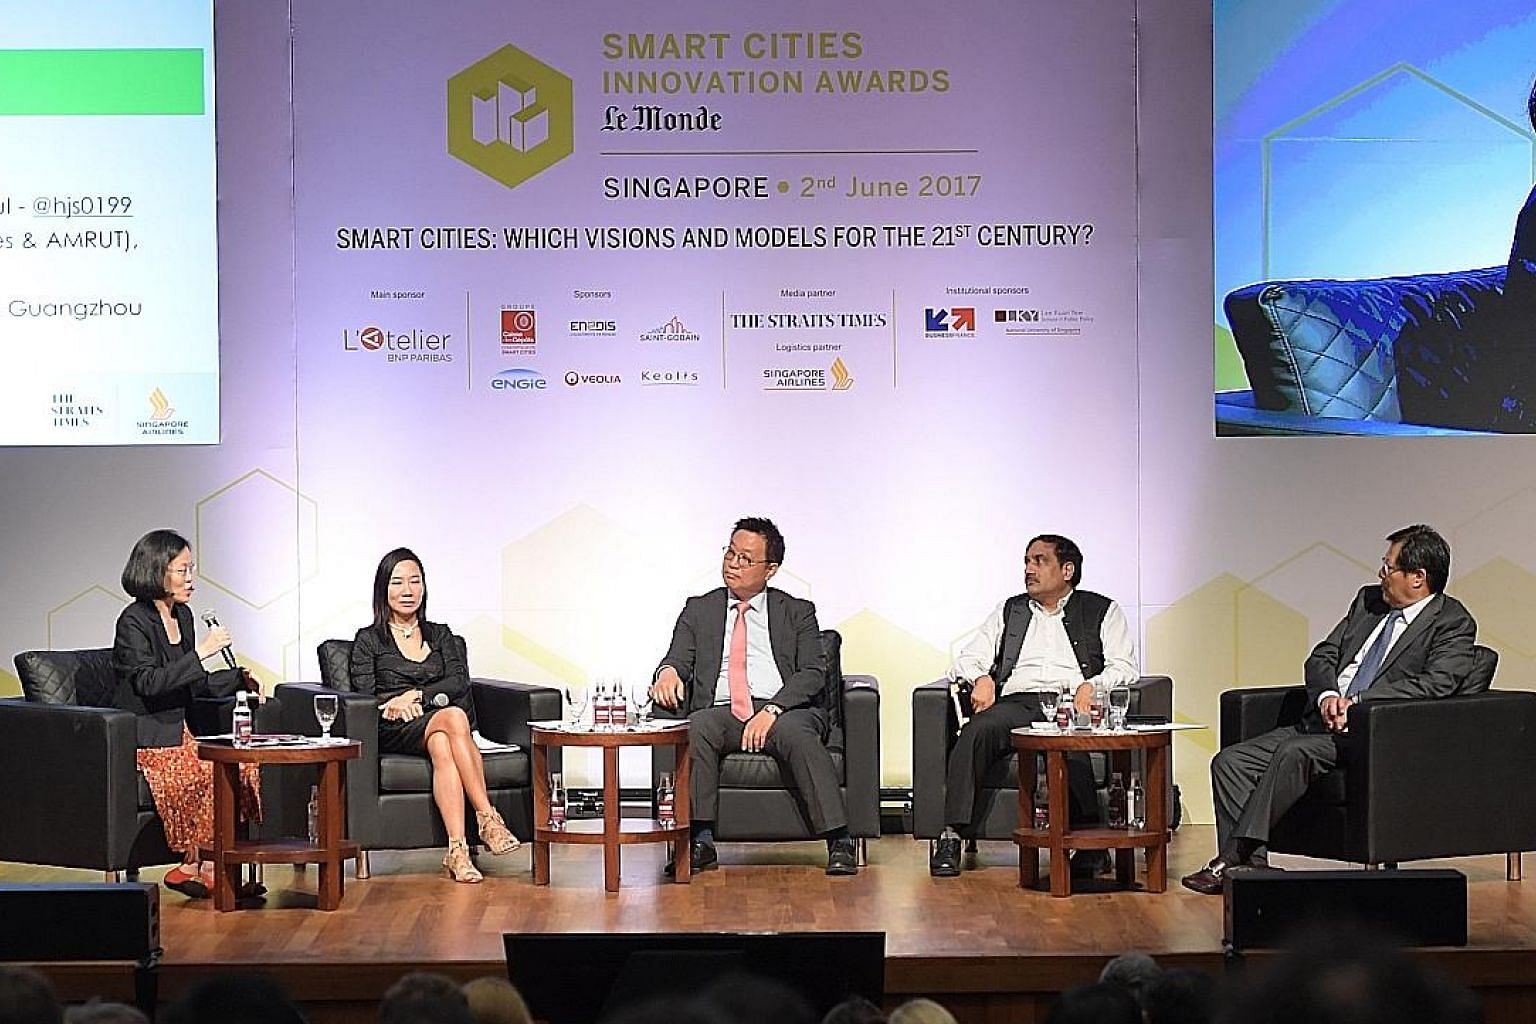 (From left) Panel moderator and ST associate opinion editor Lydia Lim with Singapore's Centre for Liveable Cities director for research Limin Hee, Seoul's National Information Society Agency senior researcher Jong Sung Hwang, India's Smart Cities Mis